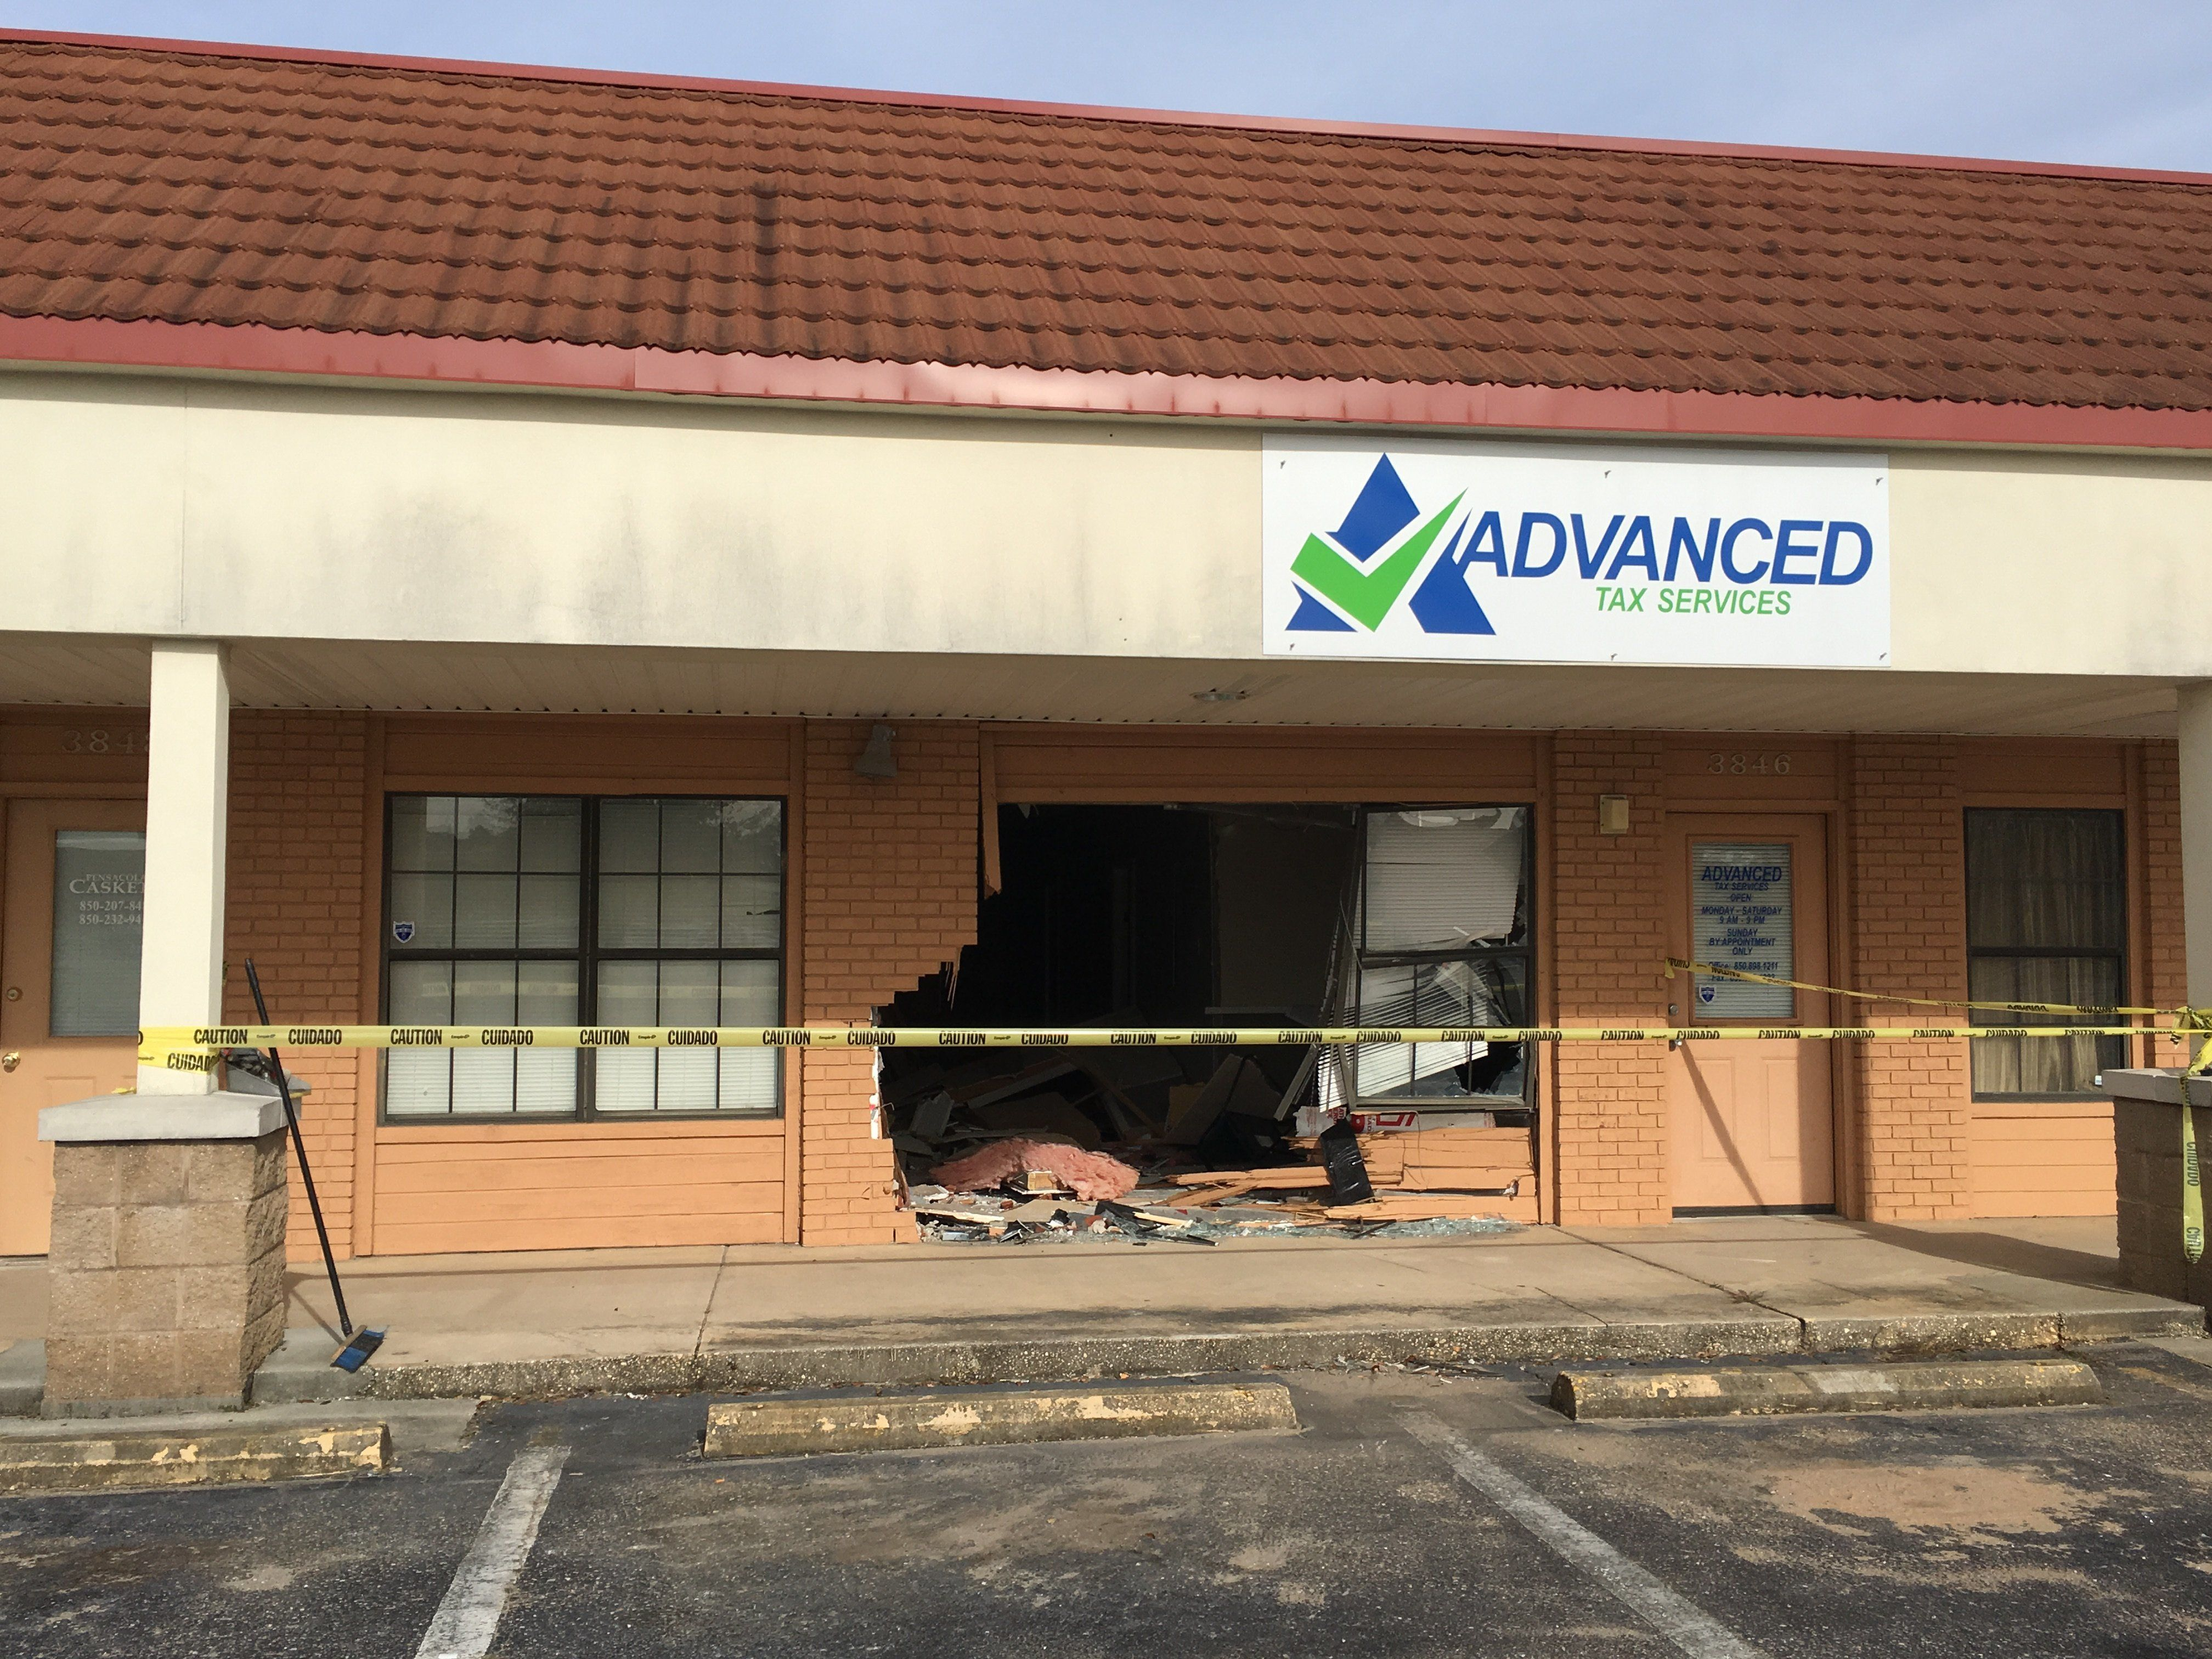 Police say aTennessee man drove his car straight through a Florida business, later telling officers that he was trying